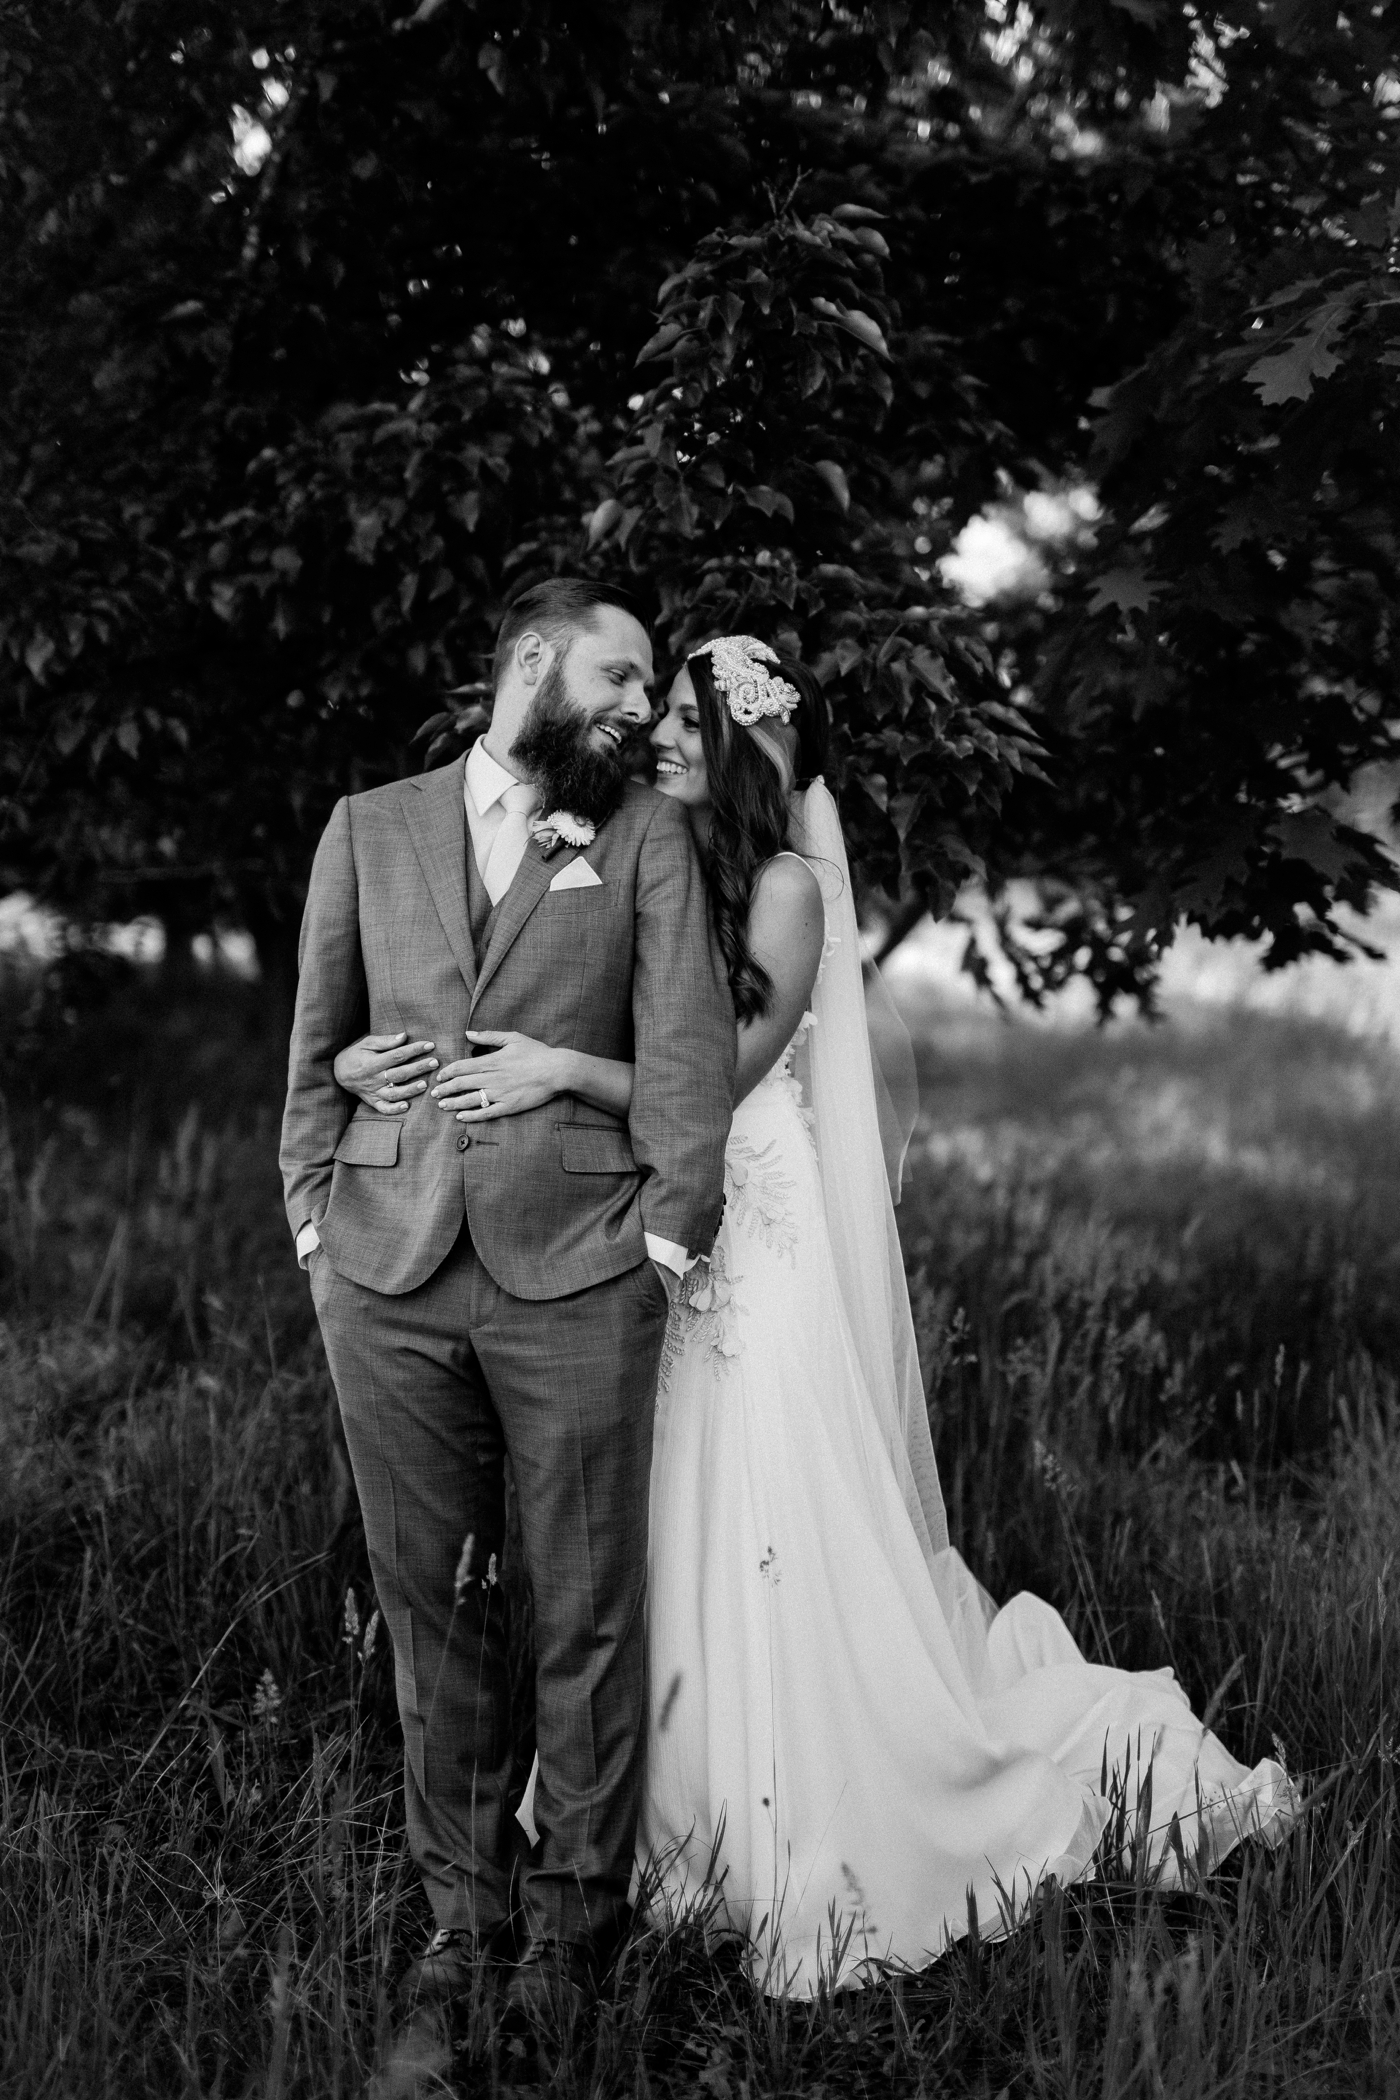 Maddy & Wes - K1 by Geoff Hardy Wedding - Adelaide Wedding Photographer - Natural wedding photography in Adelaide - Katherine Schultz_0045.jpg